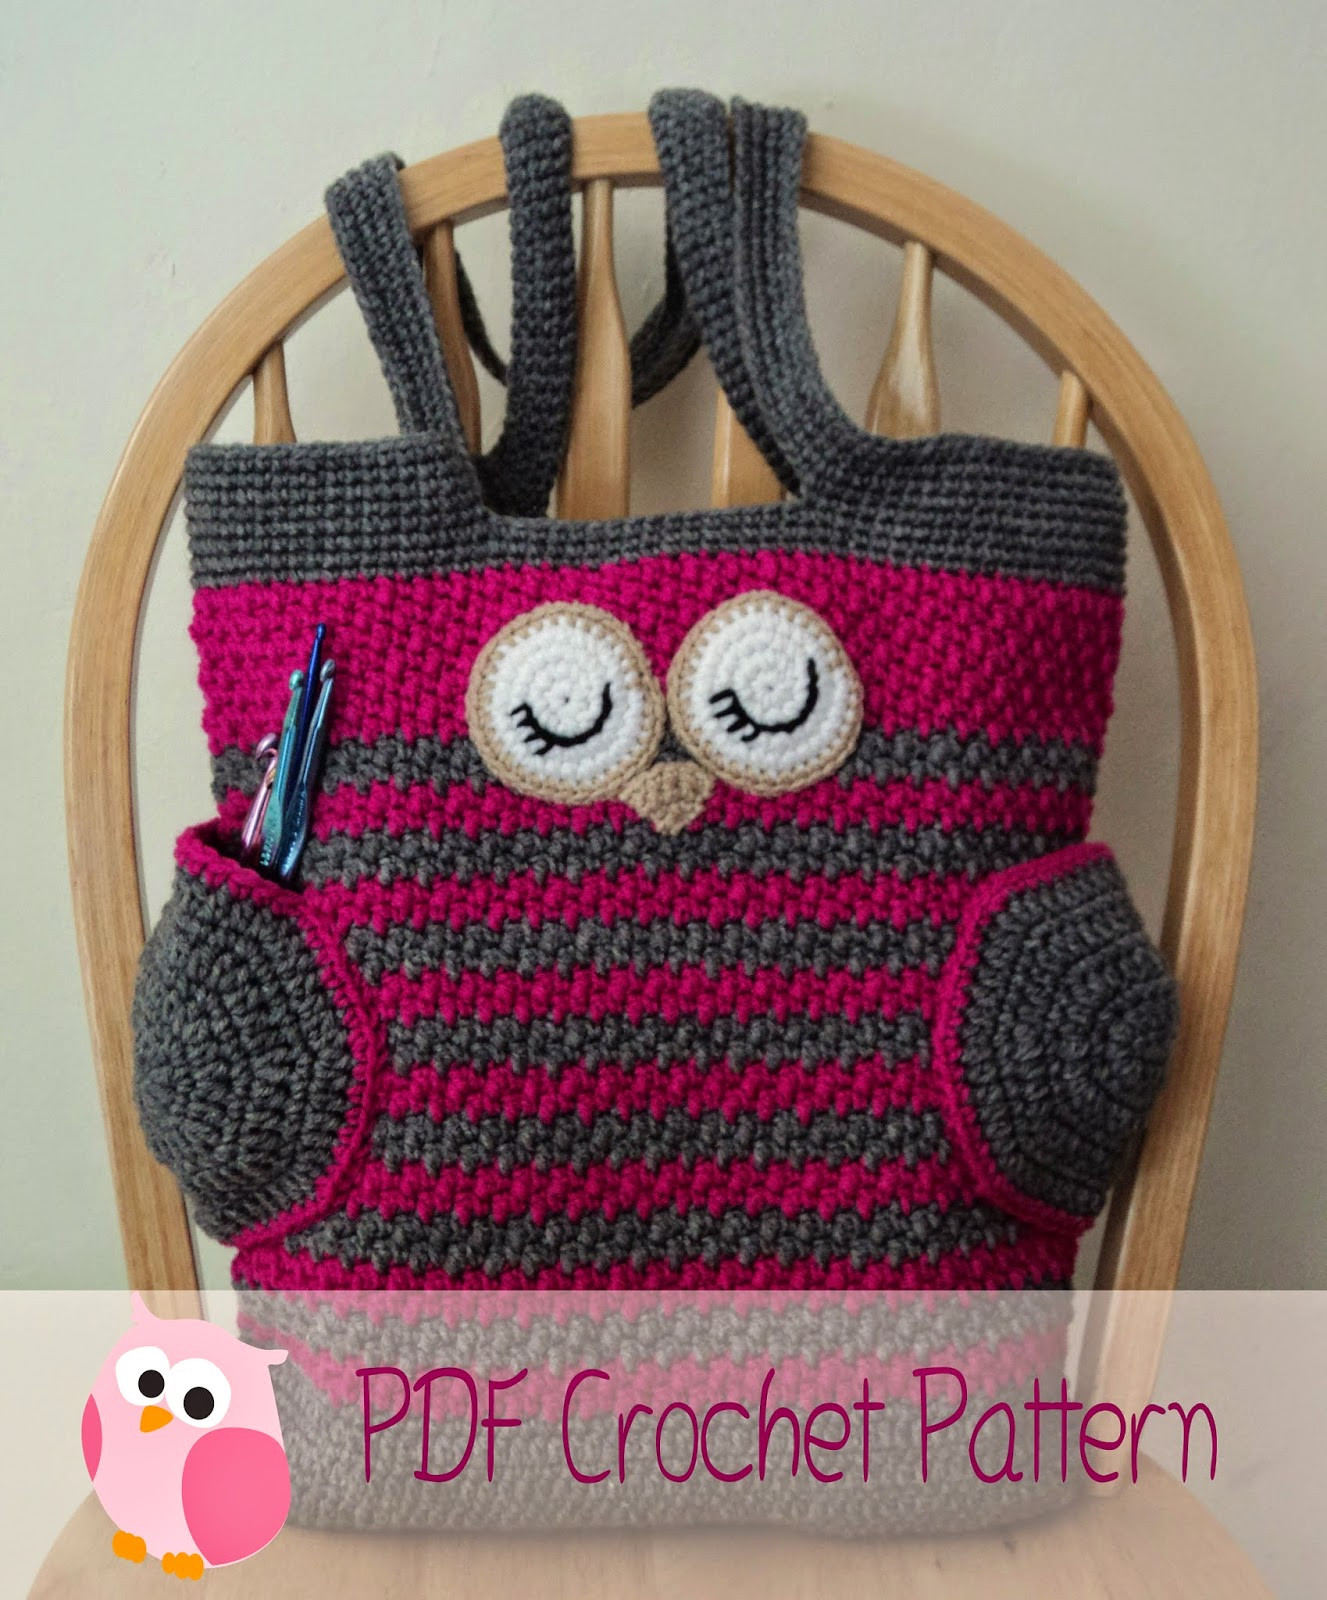 29 Crochet Bag Patterns